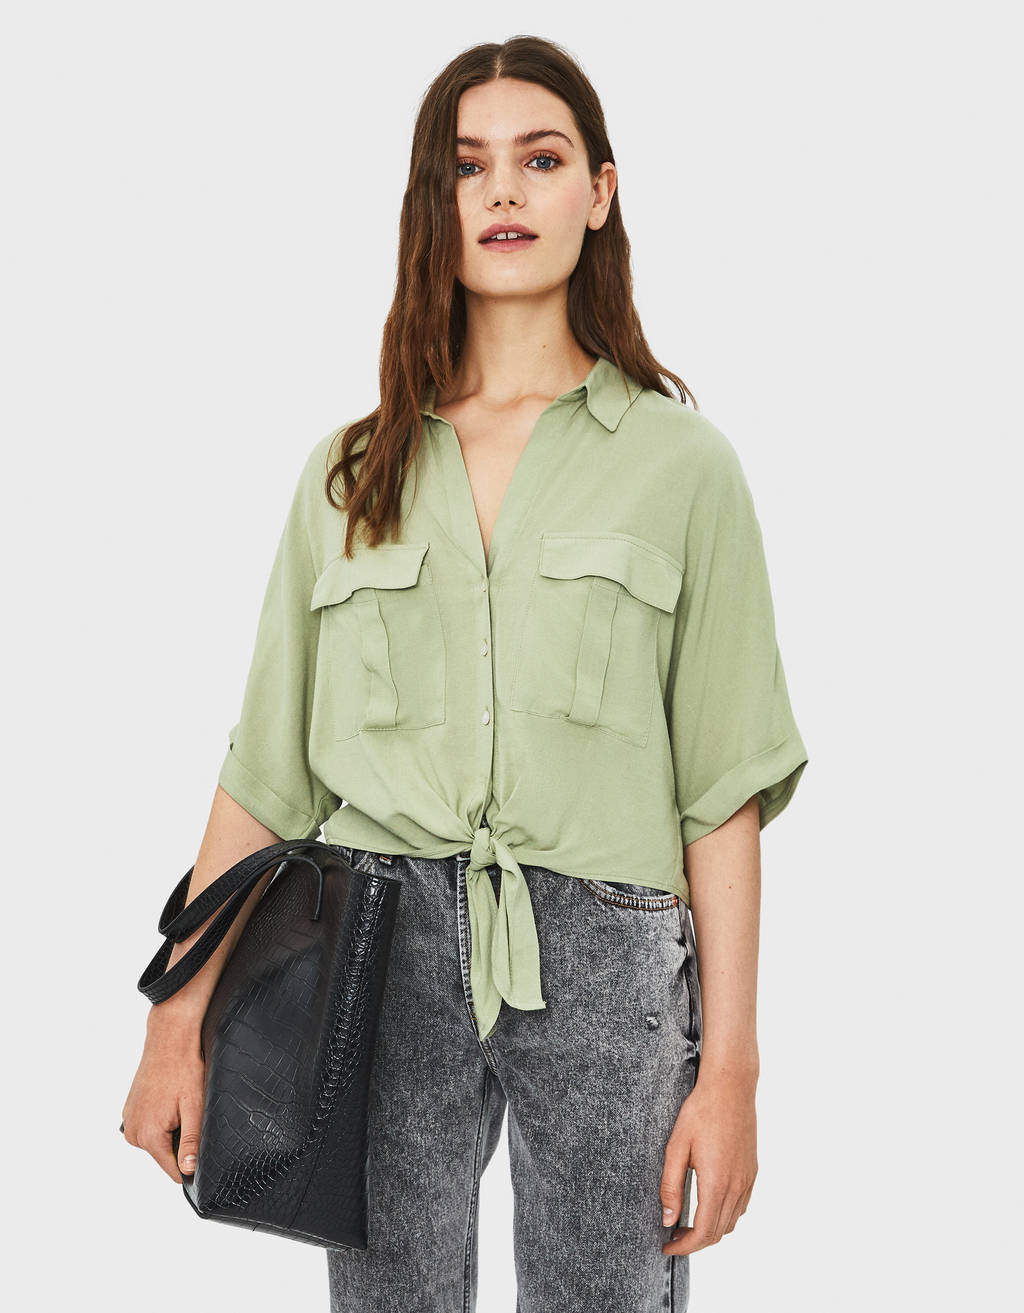 Cropped shirt with knot